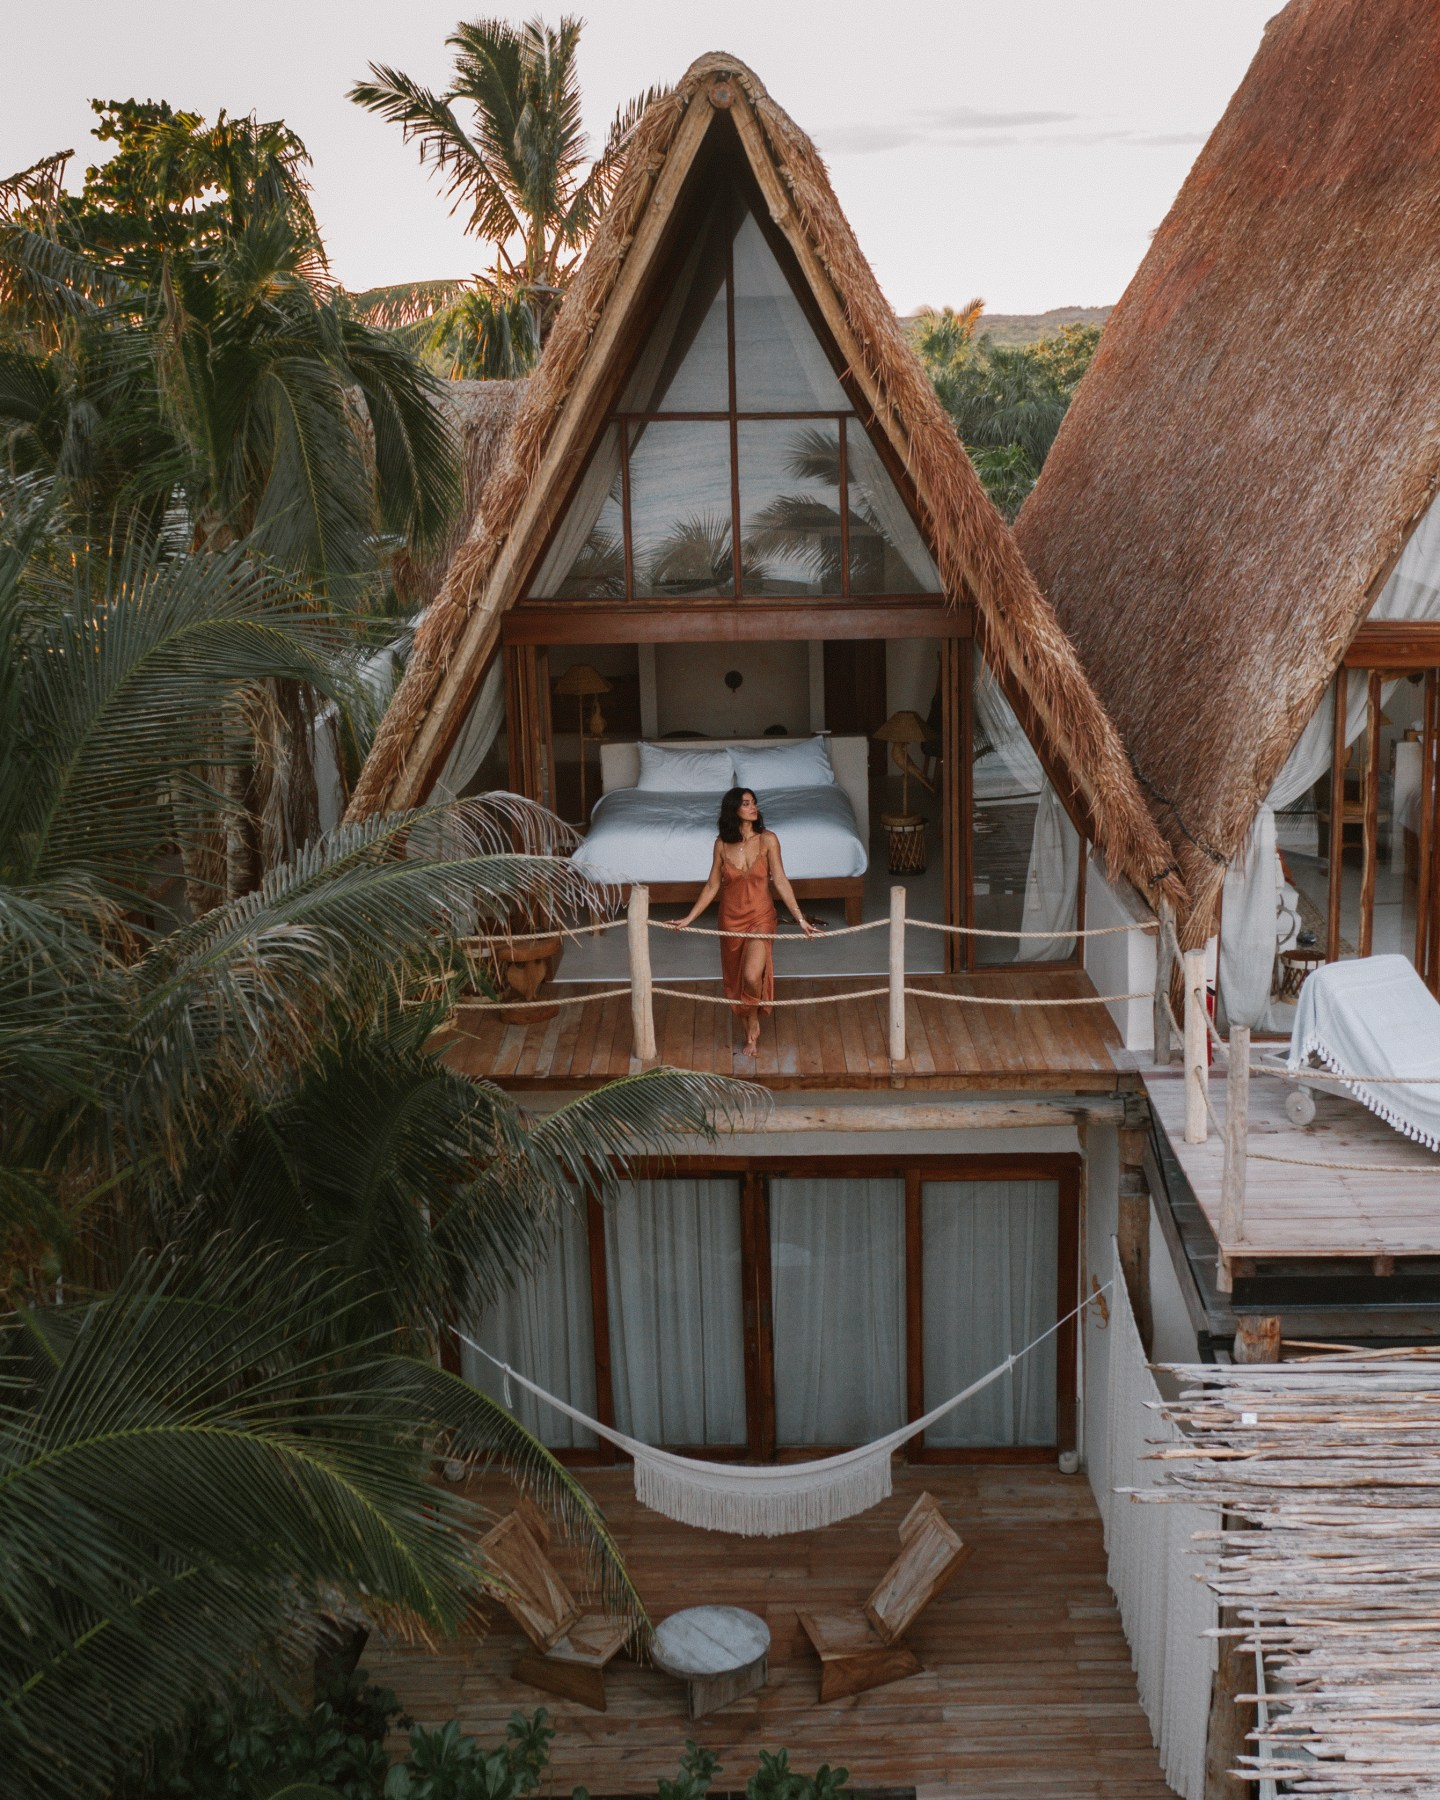 La Valise hotel in Tulum, Mexico is one of the best places to stay in Tulum